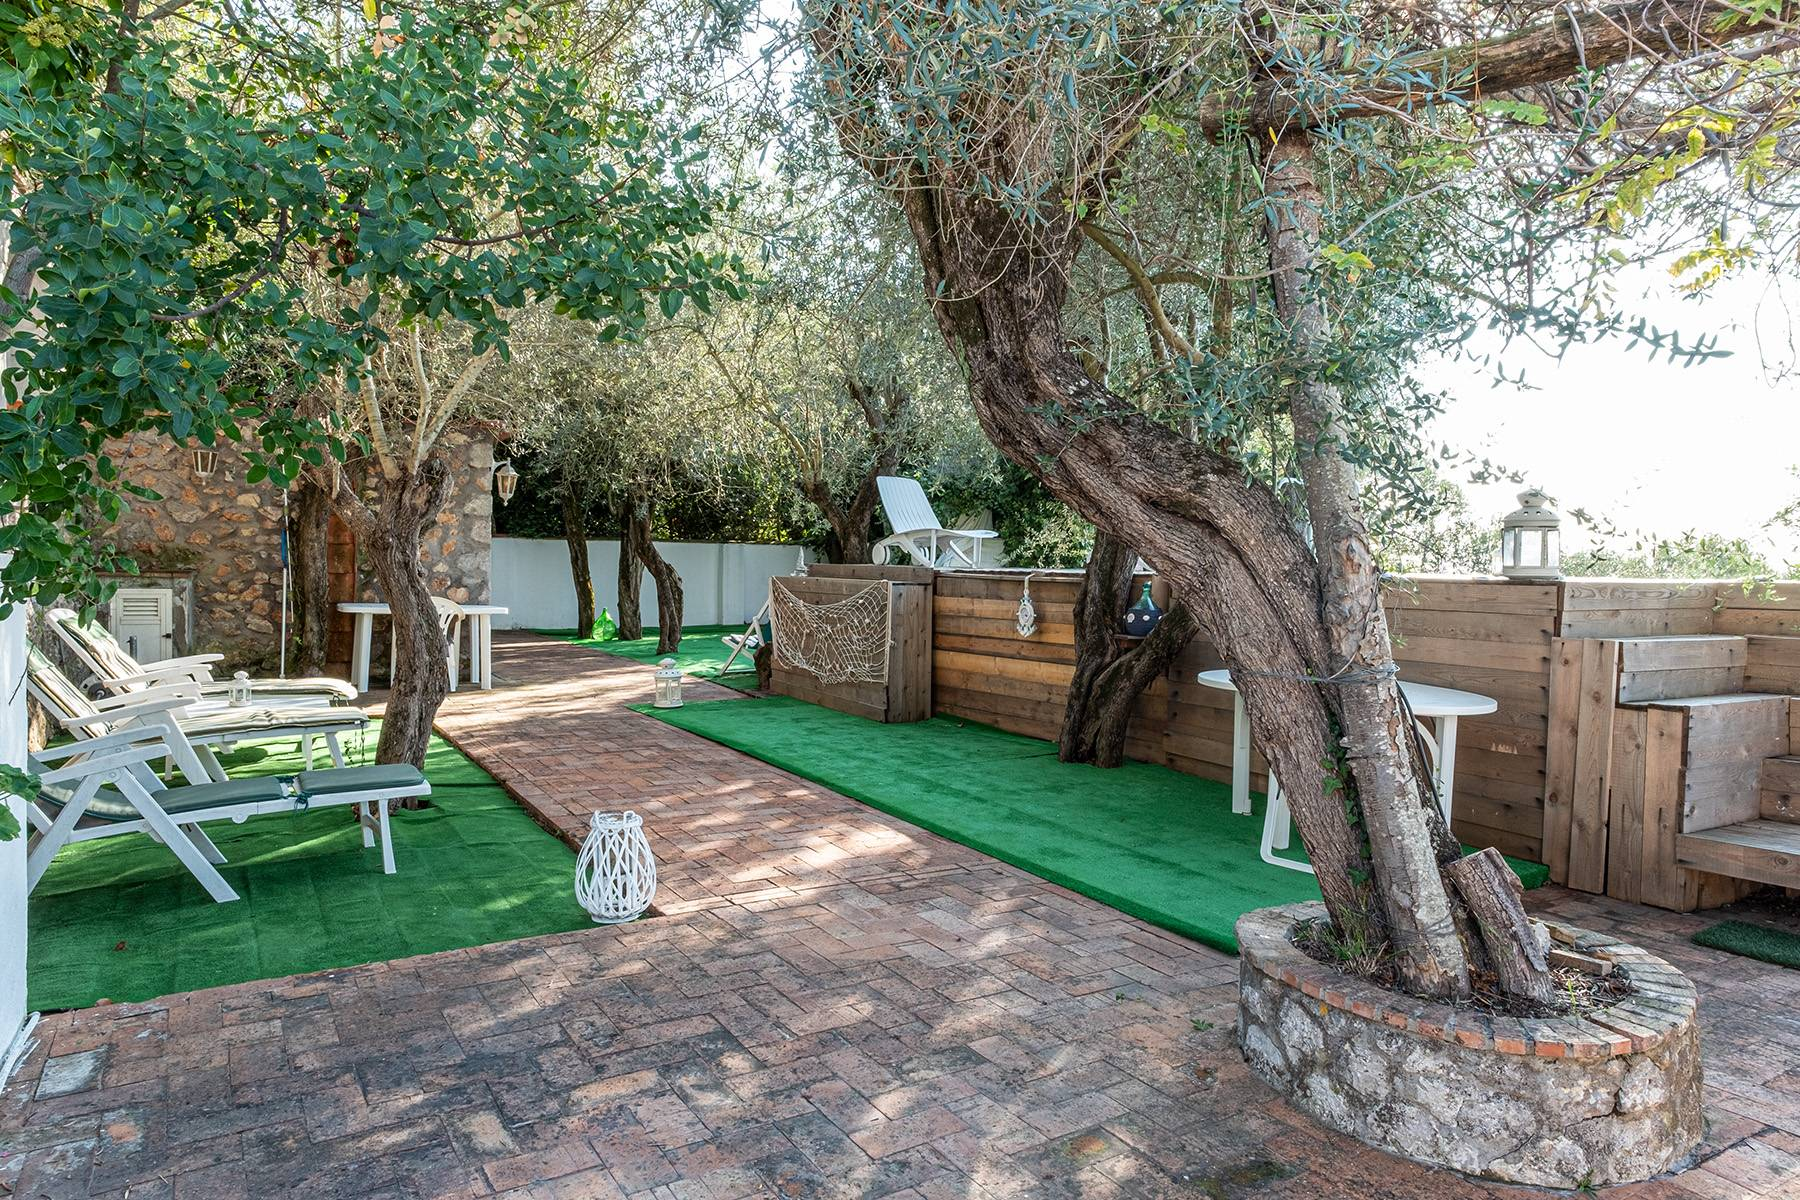 Charming villa with olive grove and swimming pool overlooking the sea - 22